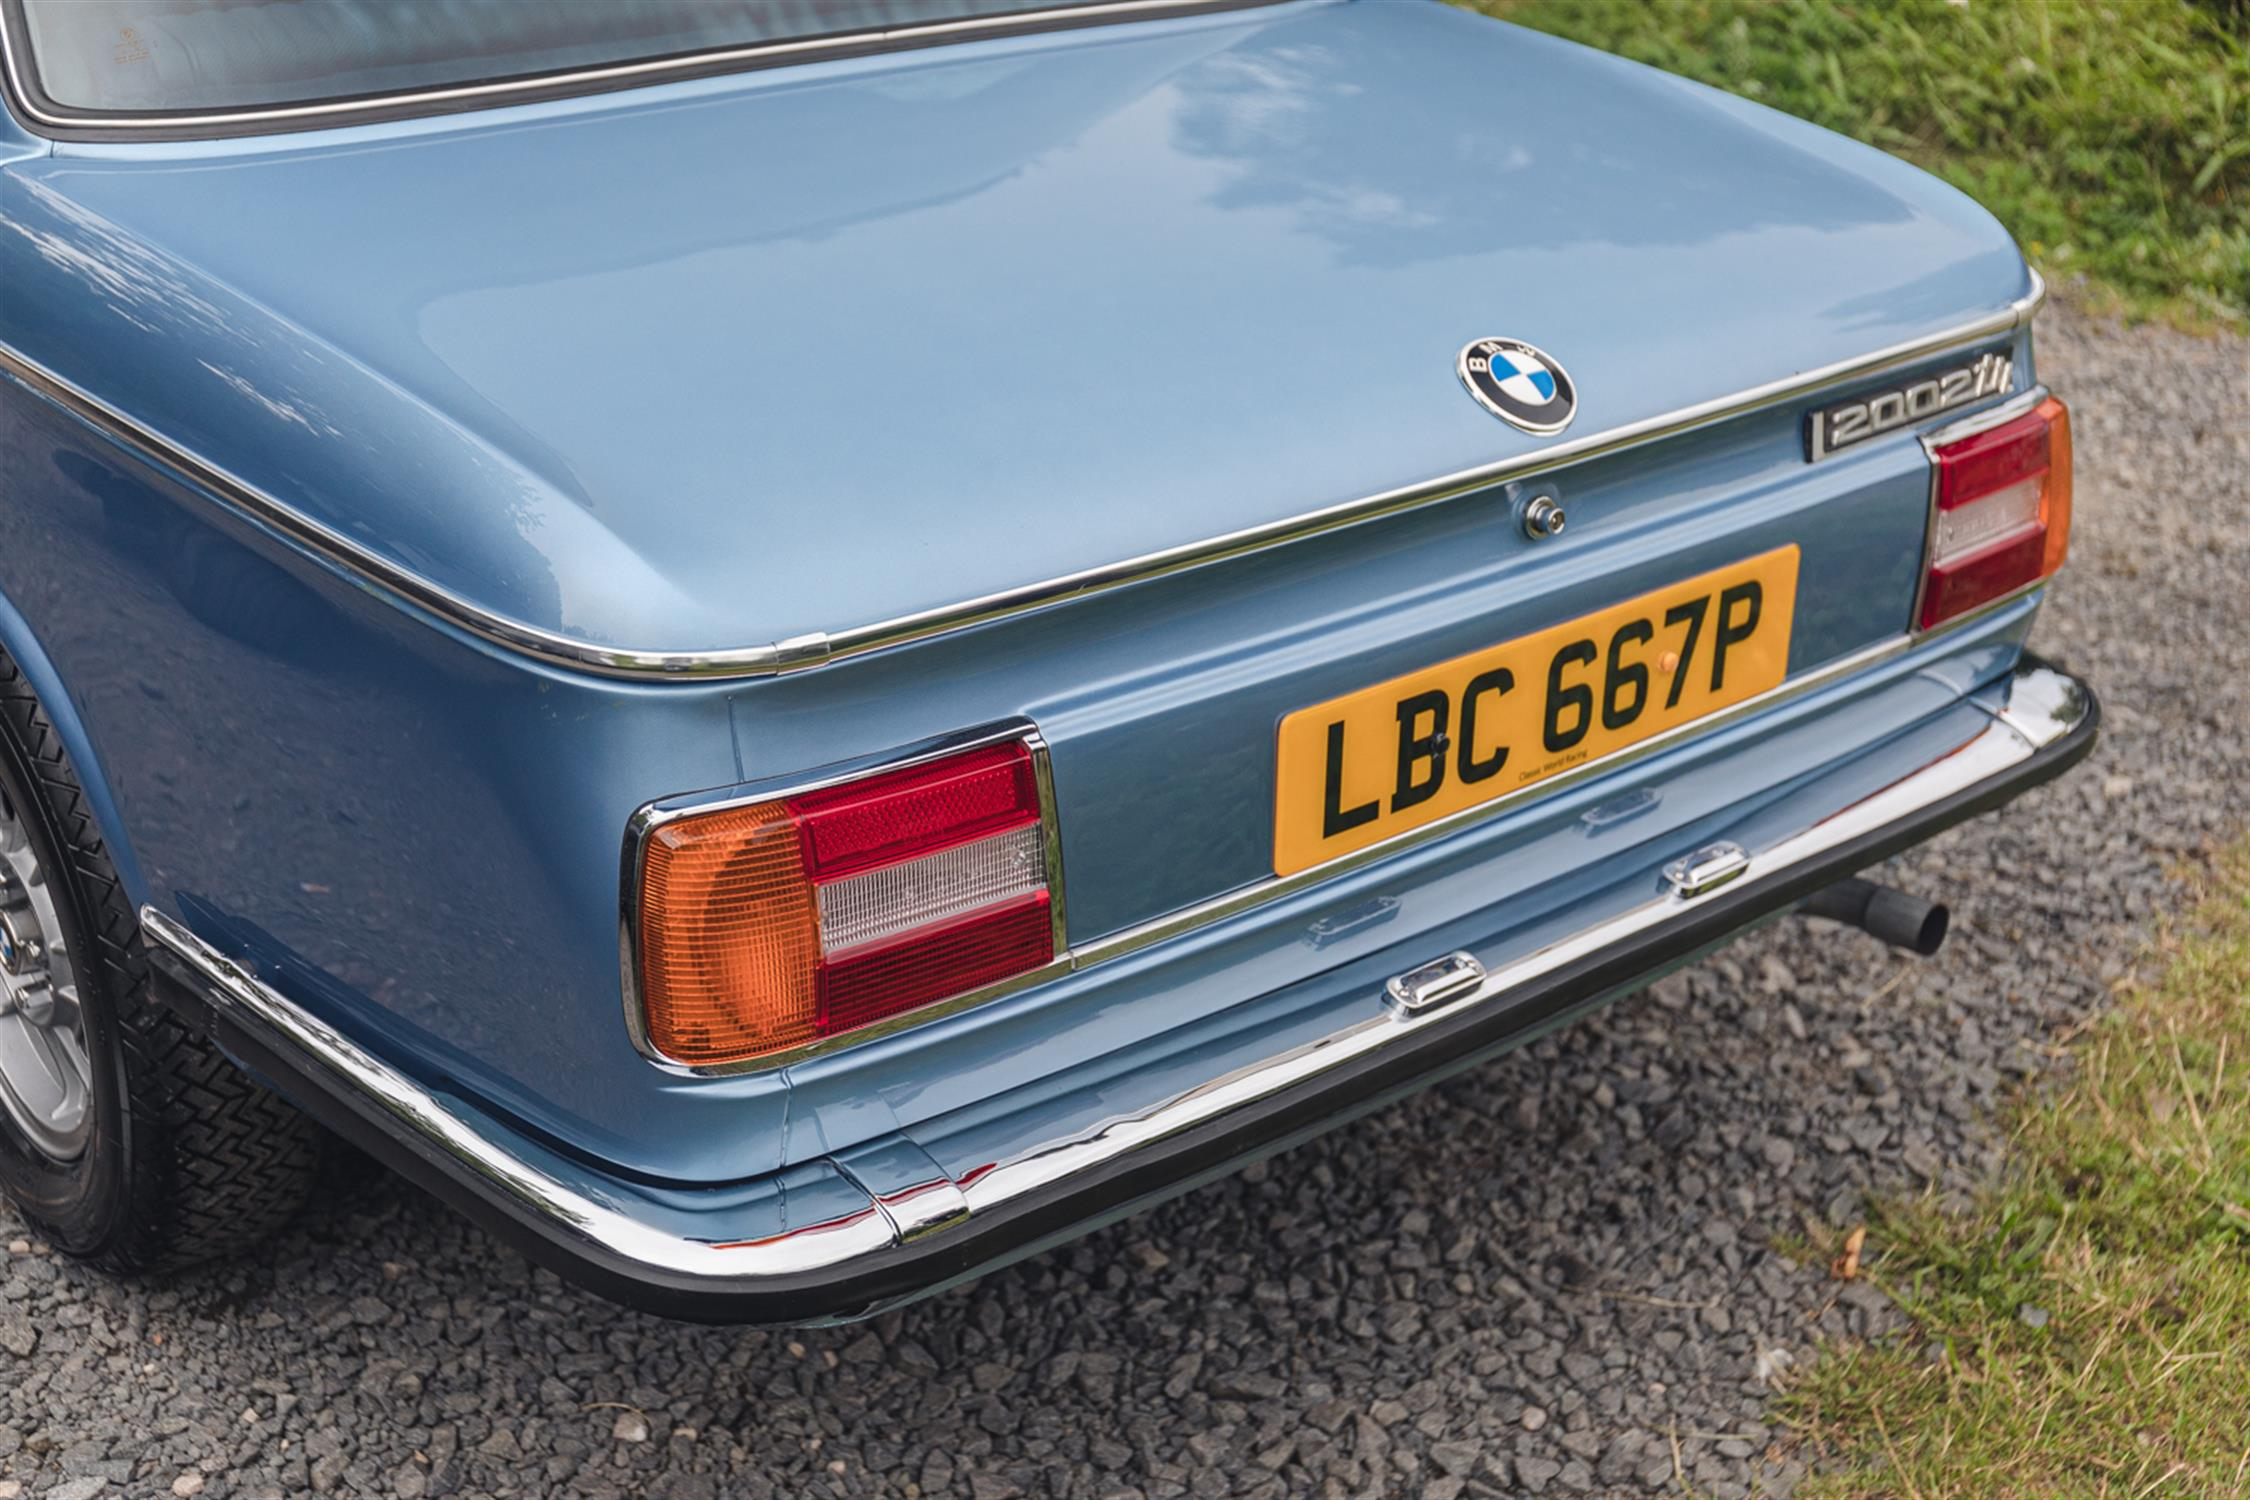 1975 BMW 2002 Tii - Image 10 of 10